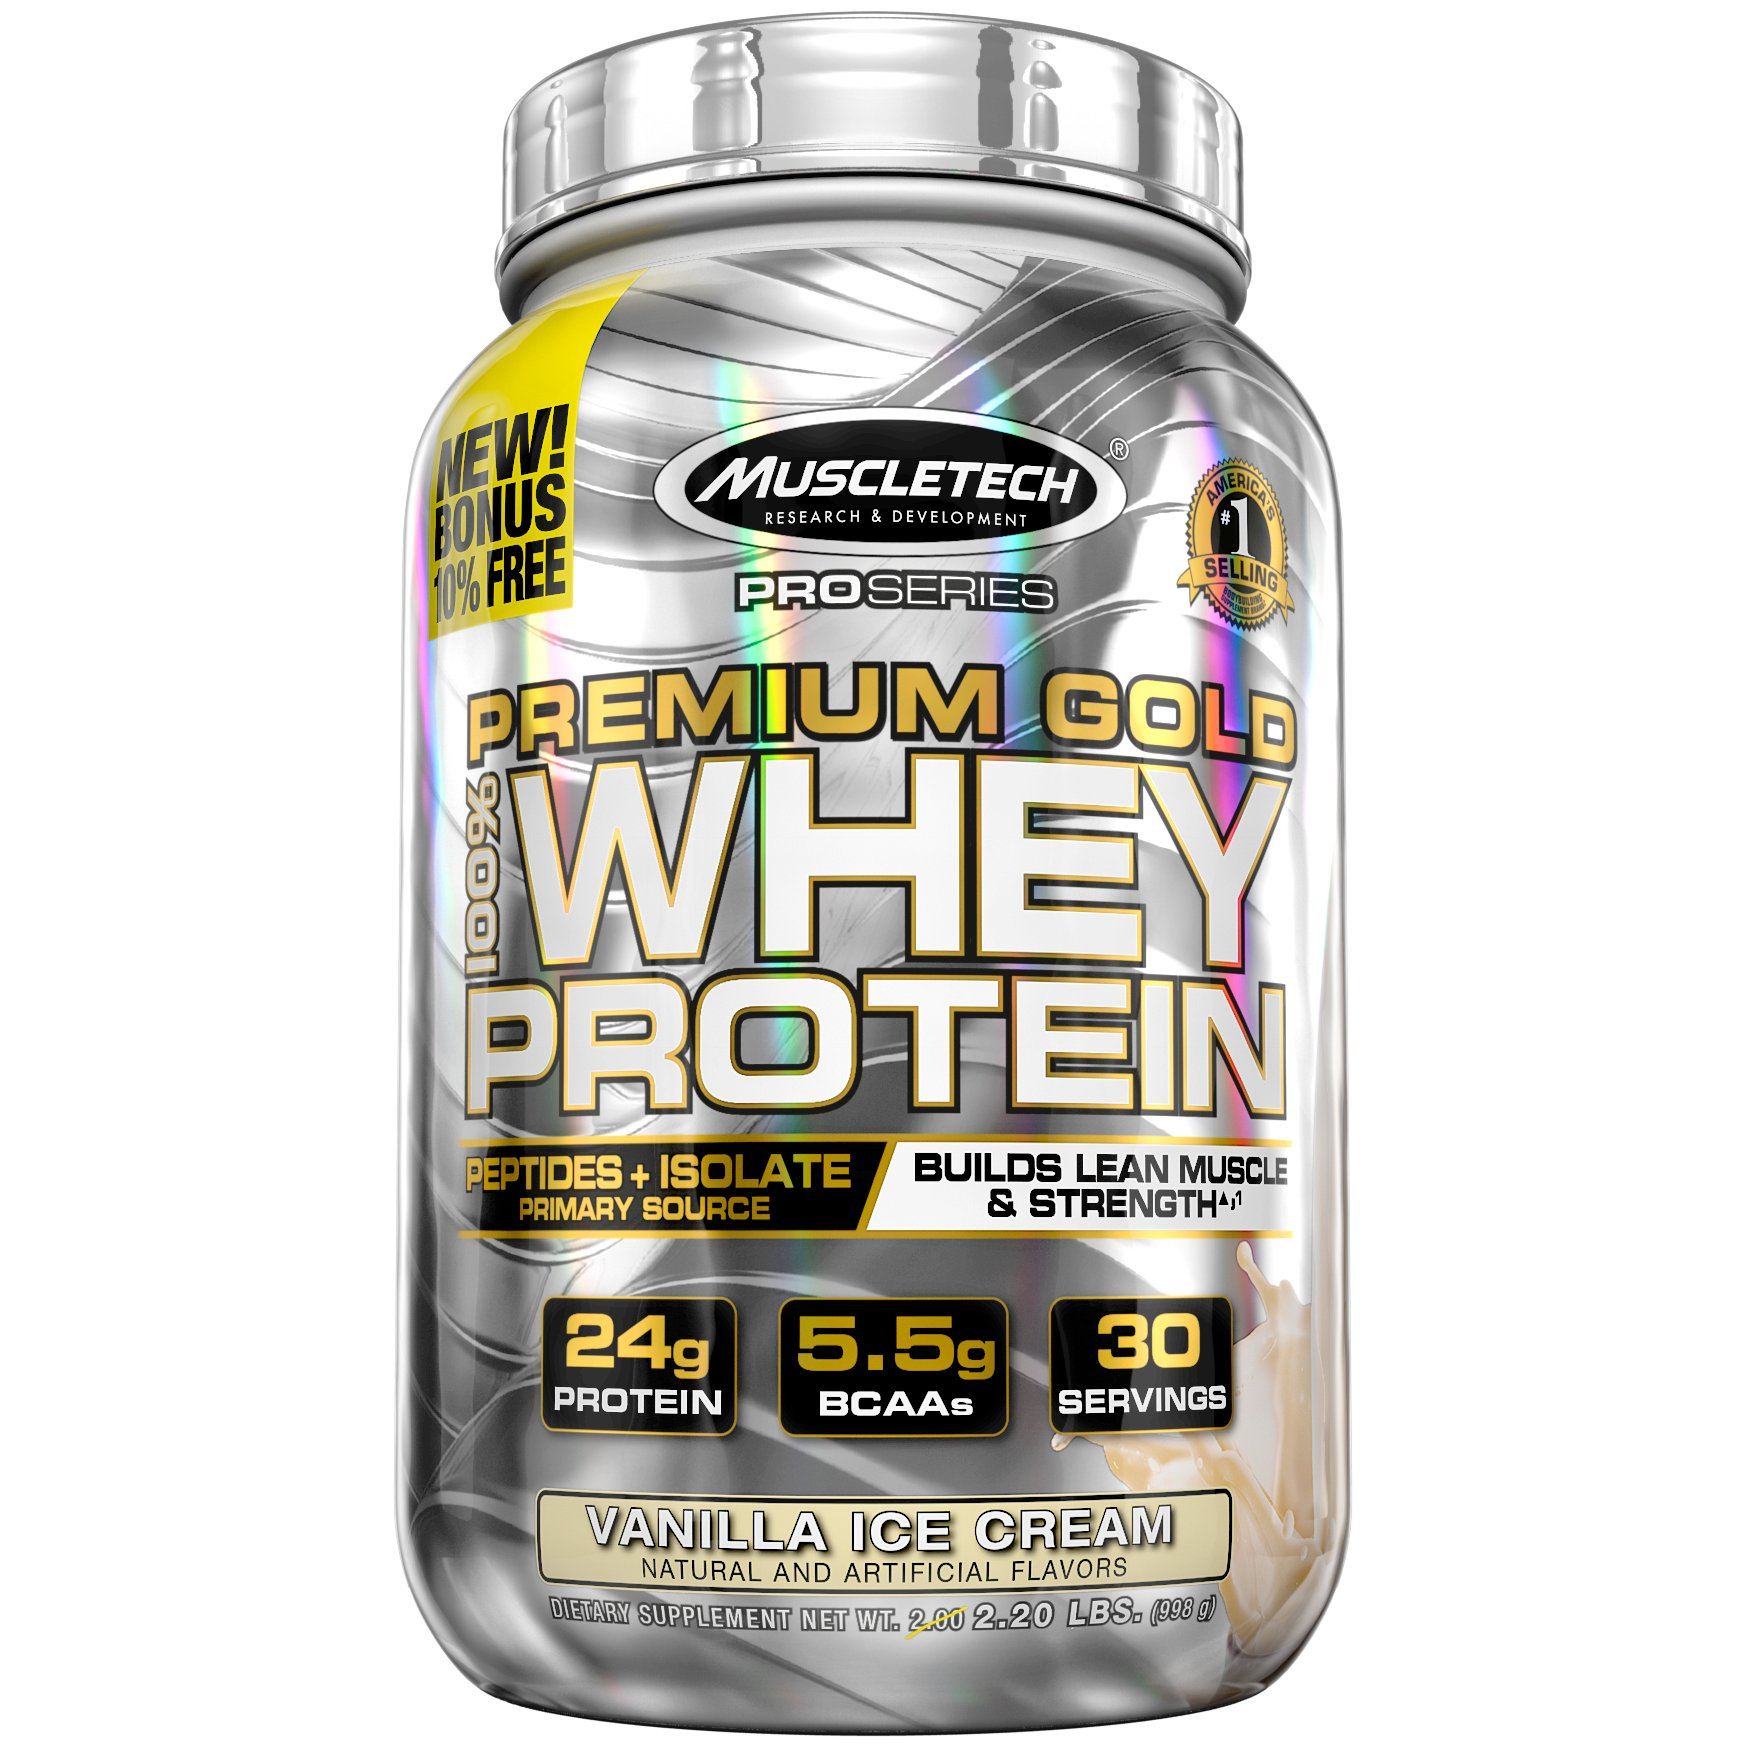 MuscleTech Premium Gold 100% Whey Protein, Premium Whey Protein Powder, Instantized and Ultra